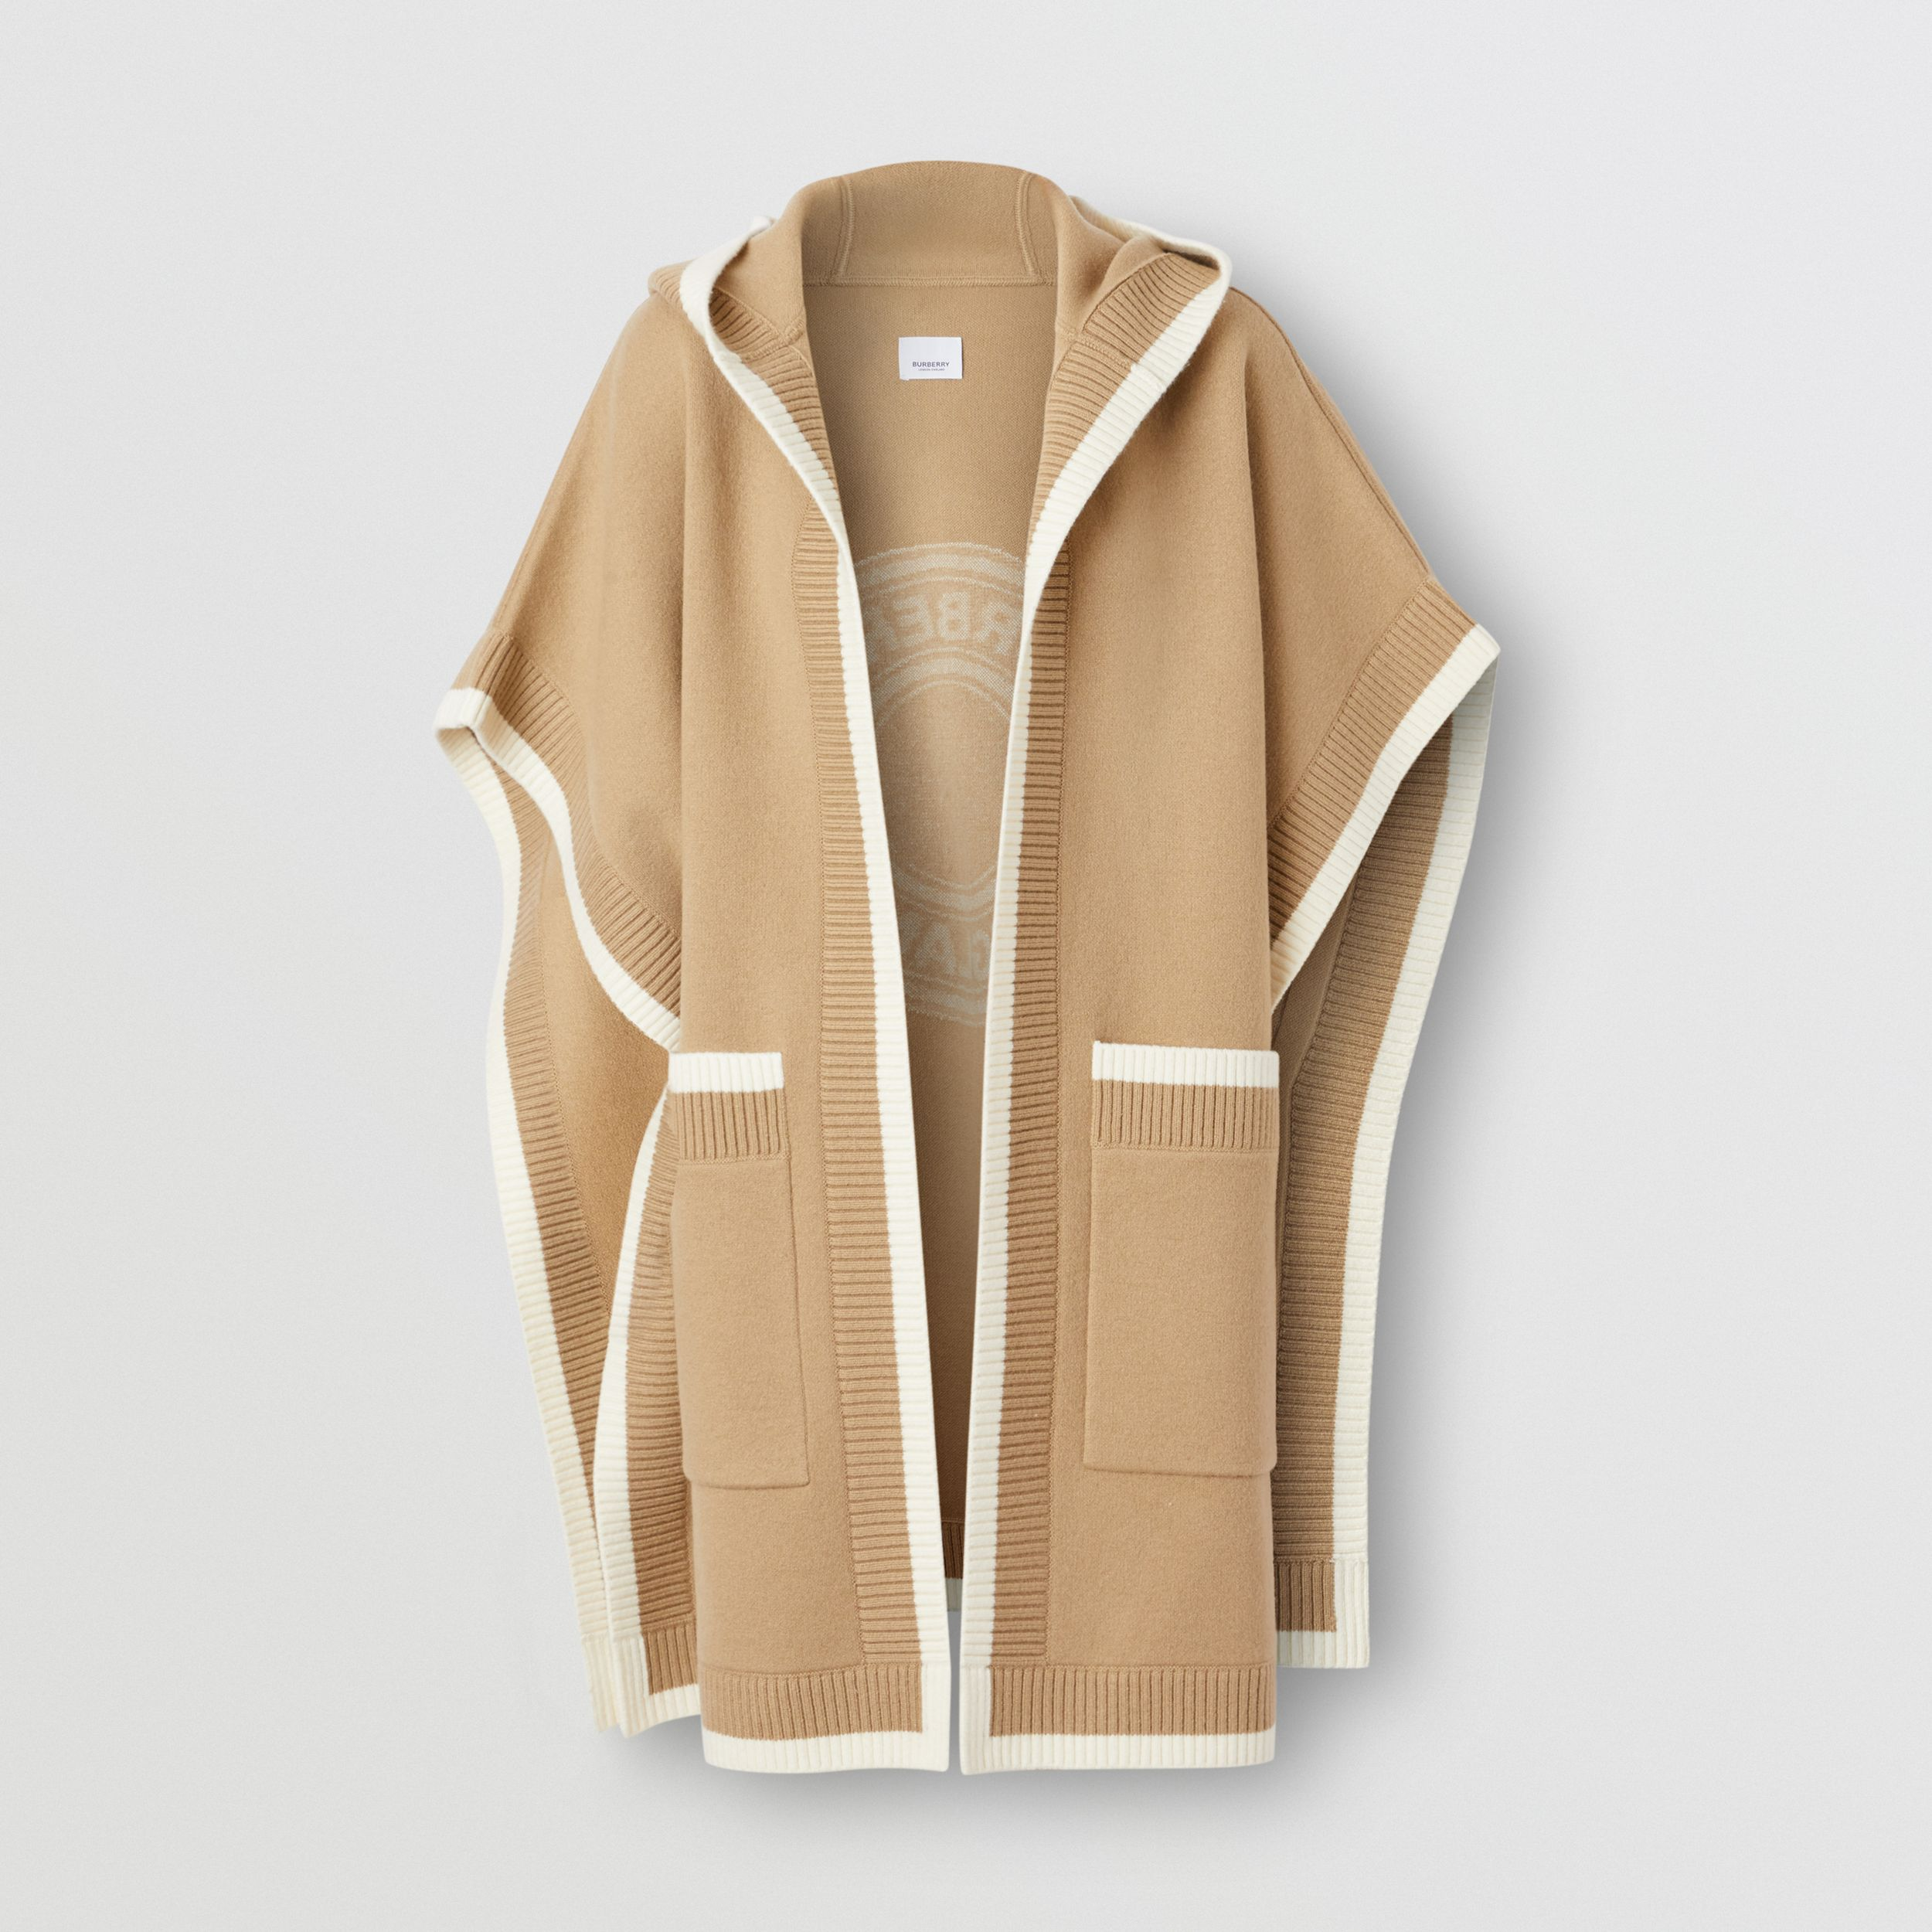 Logo Graphic Wool Cashmere Jacquard Hooded Cape in Archive Beige - Women | Burberry - 4